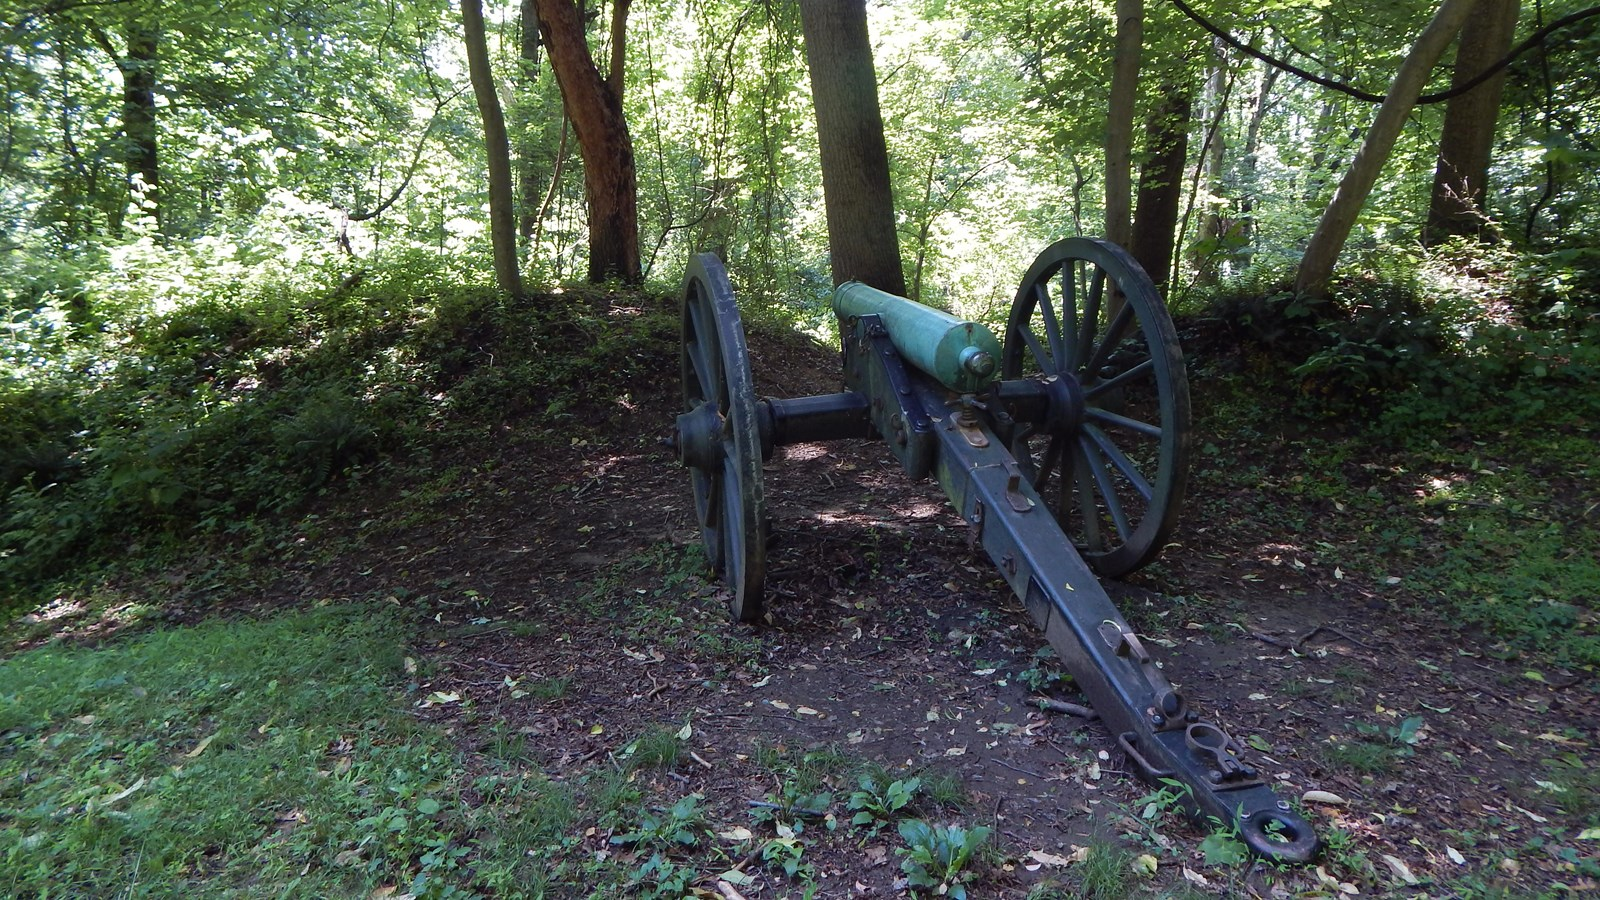 Cannon at Fort Marcy Park. Trees and bushes in the background.